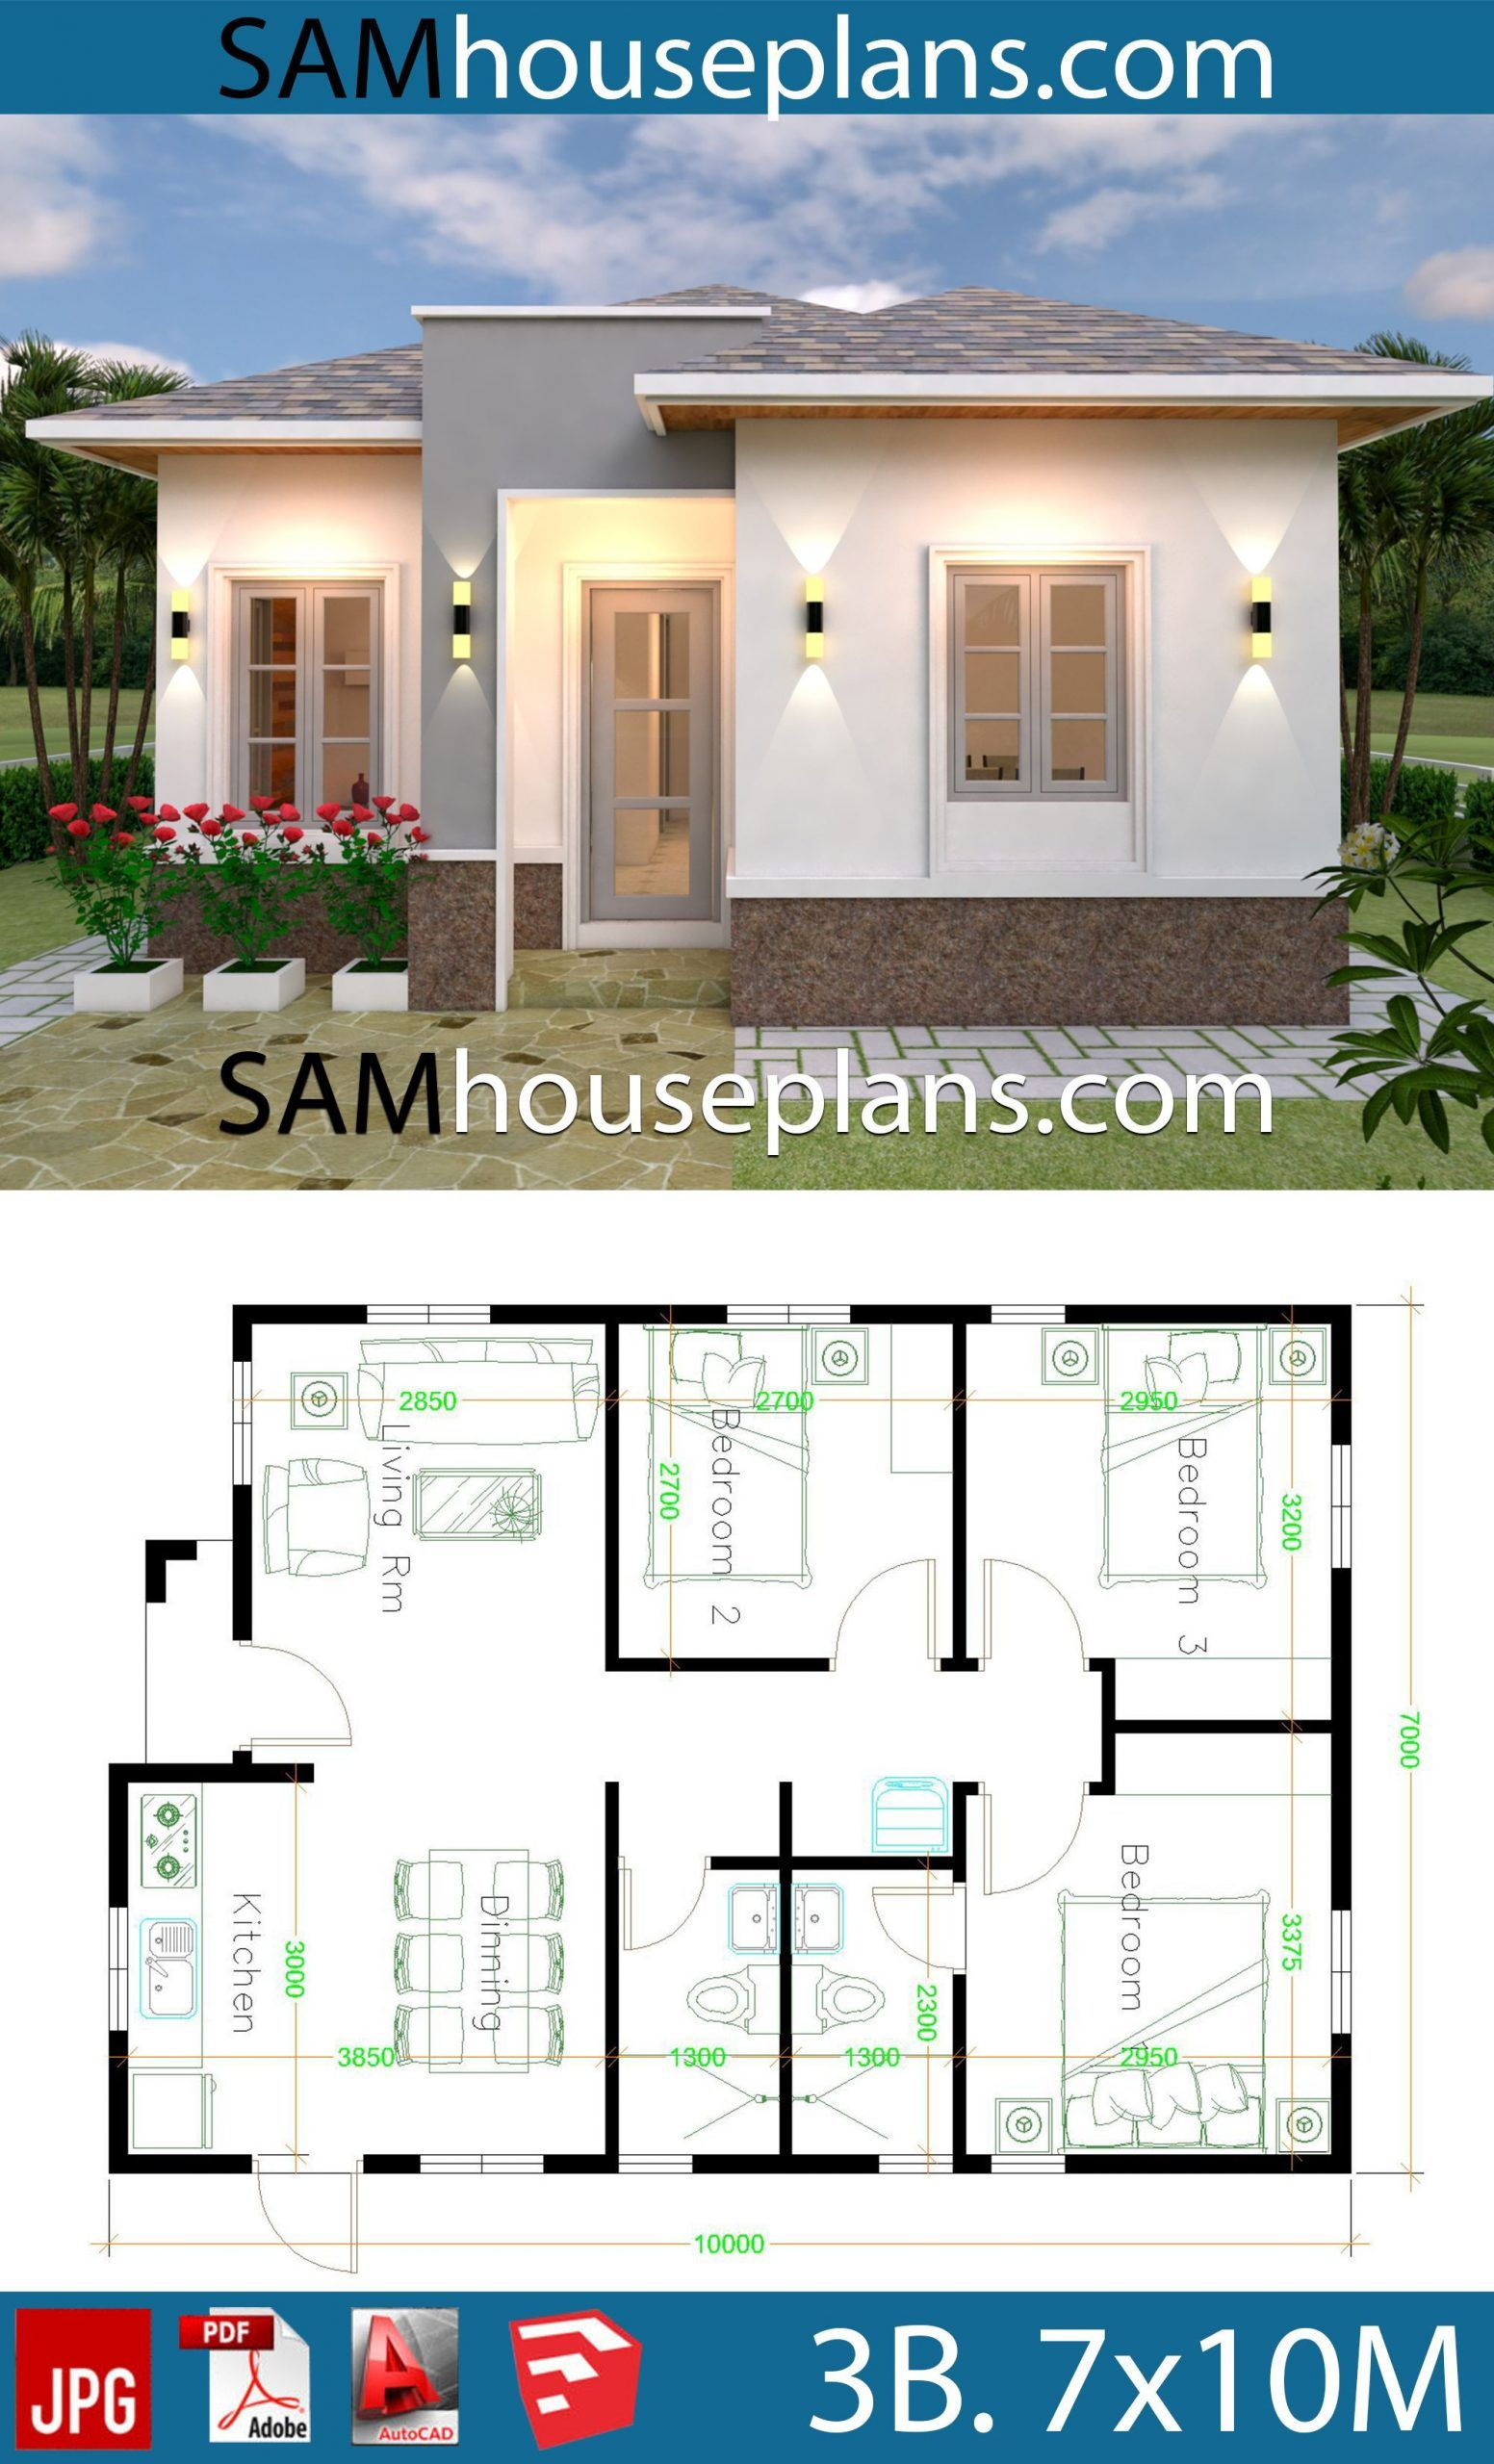 House Building Plans Free Download 2021 House Plan Gallery My House Plans House Construction Plan